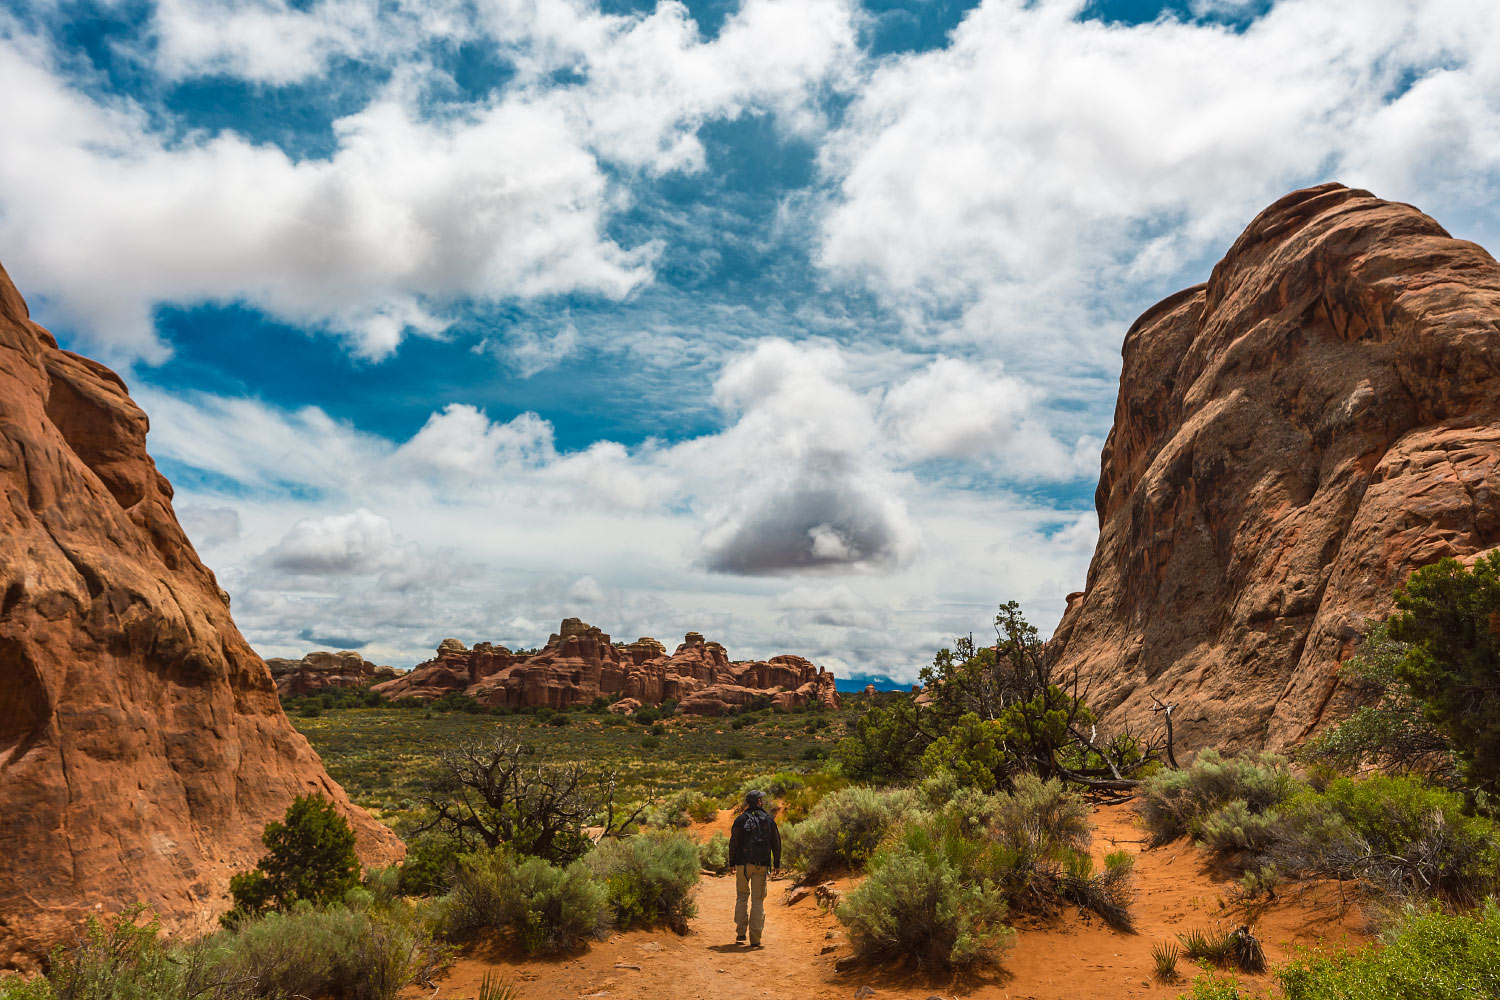 A visitor takes a walk through Arches National Park, Utah.